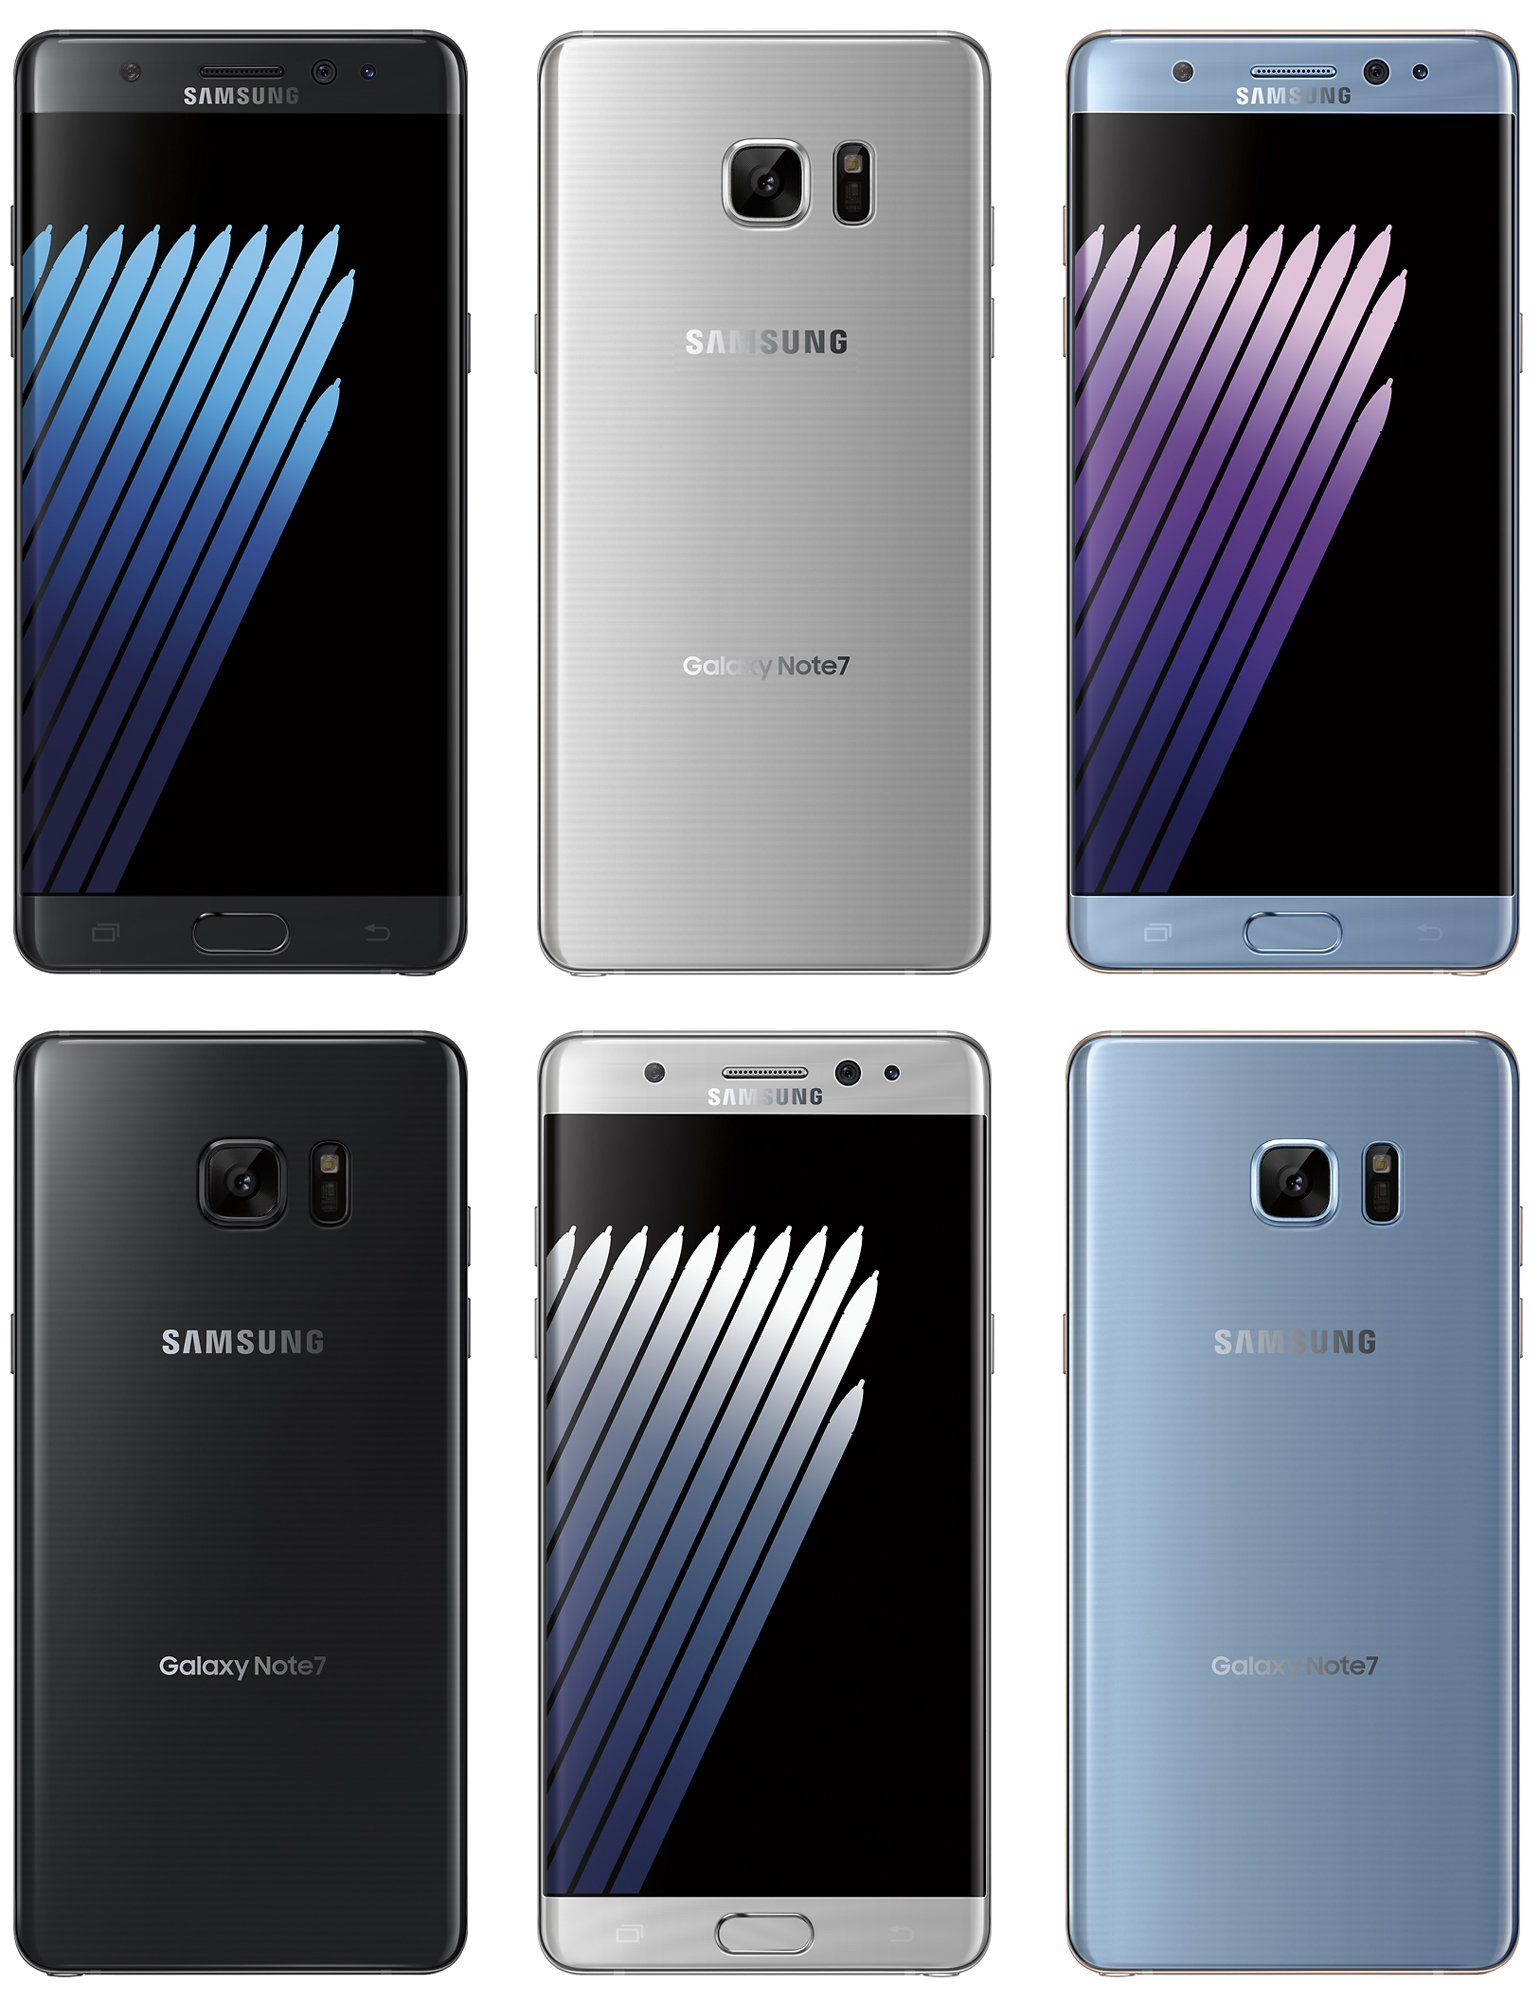 Galaxy Note 7 Render